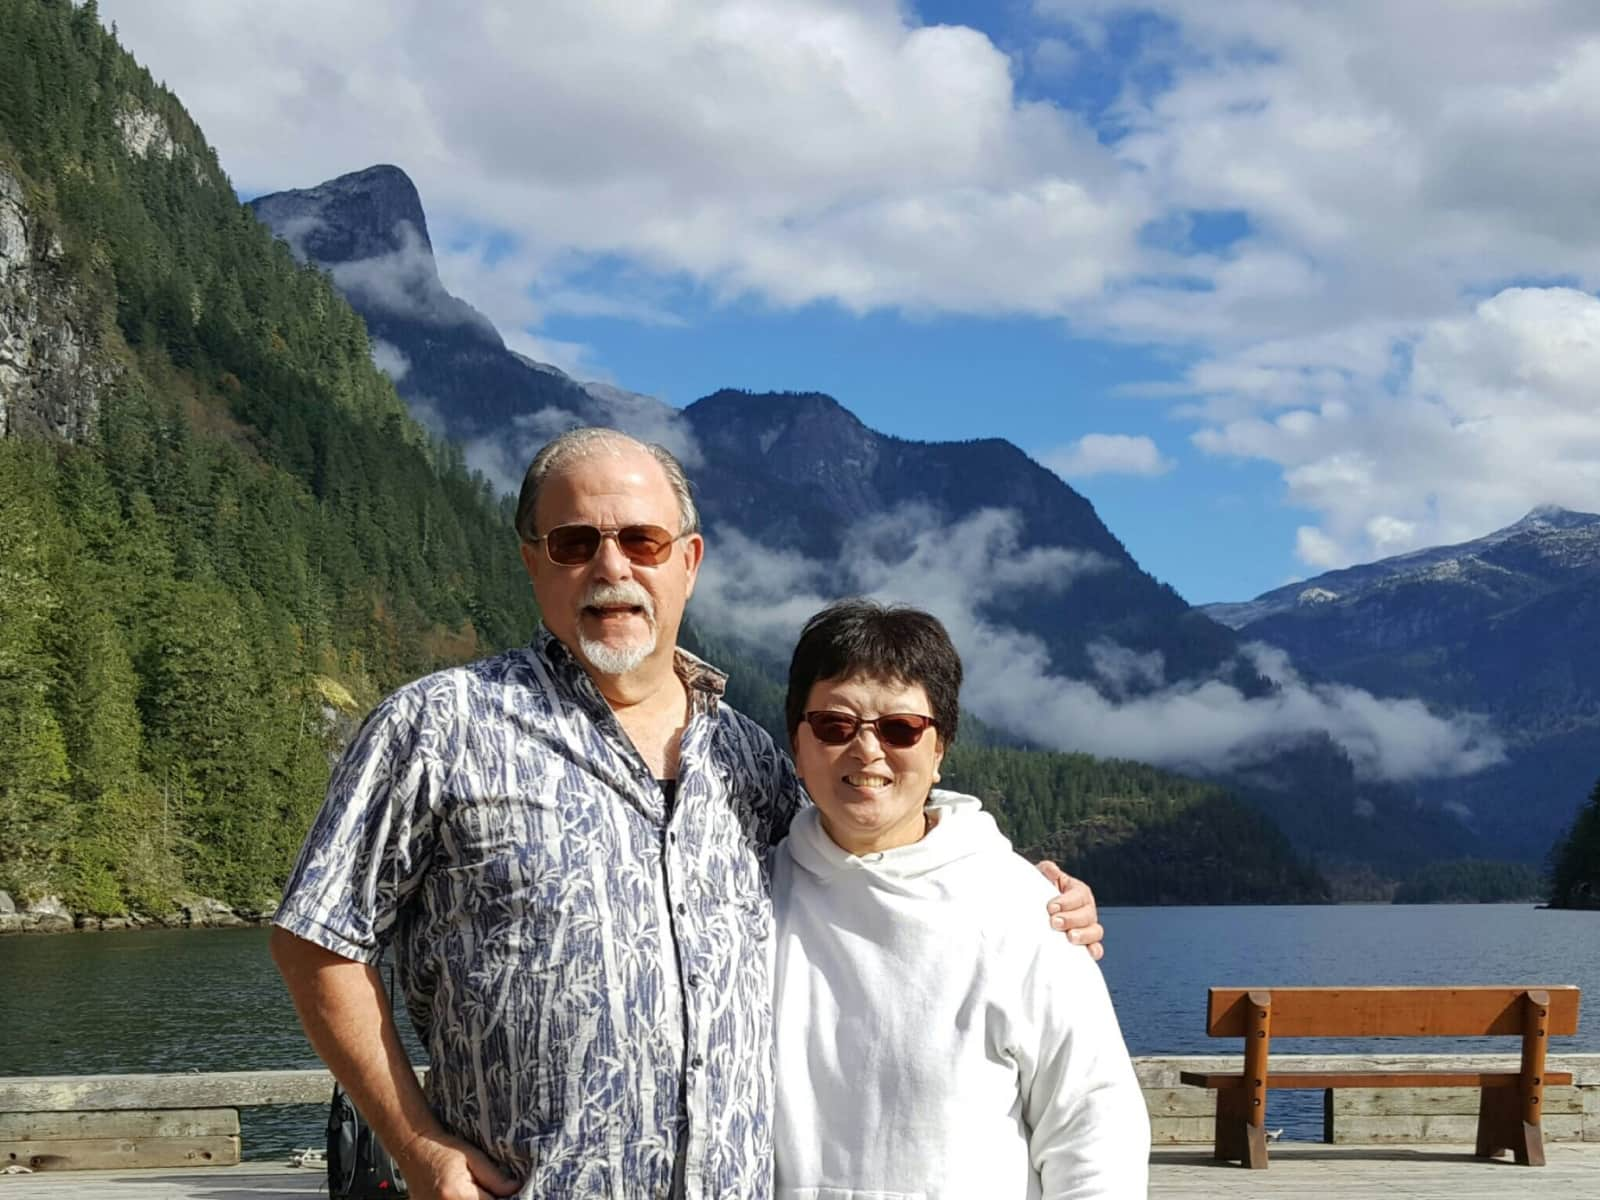 Stephen & Kathy from Lake Stevens, Washington, United States